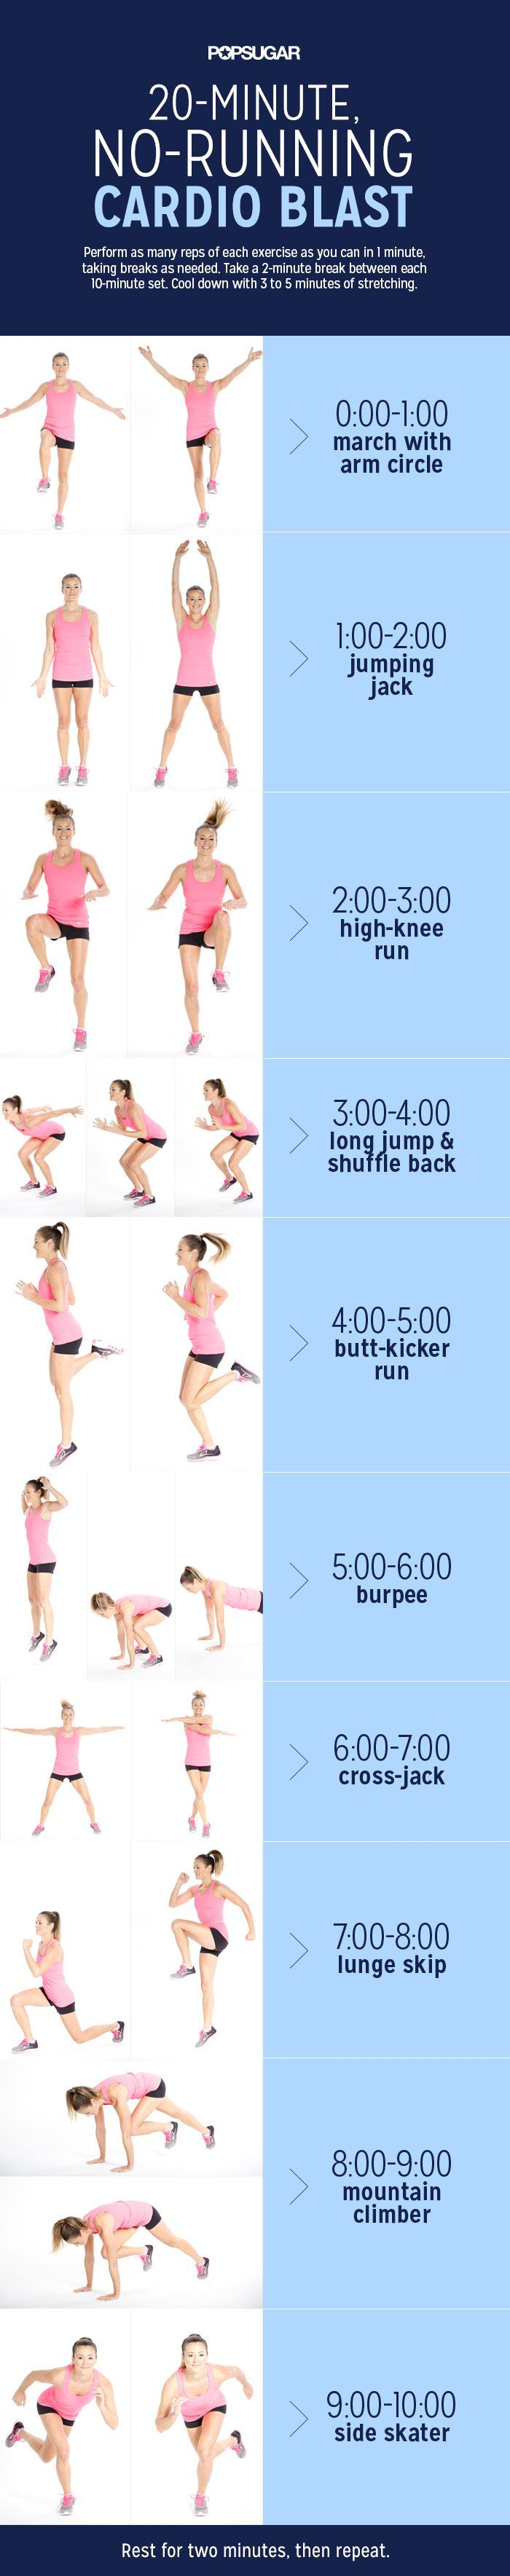 20 Minute No Running Cardio Blast Cardio Running And Living Room Workout